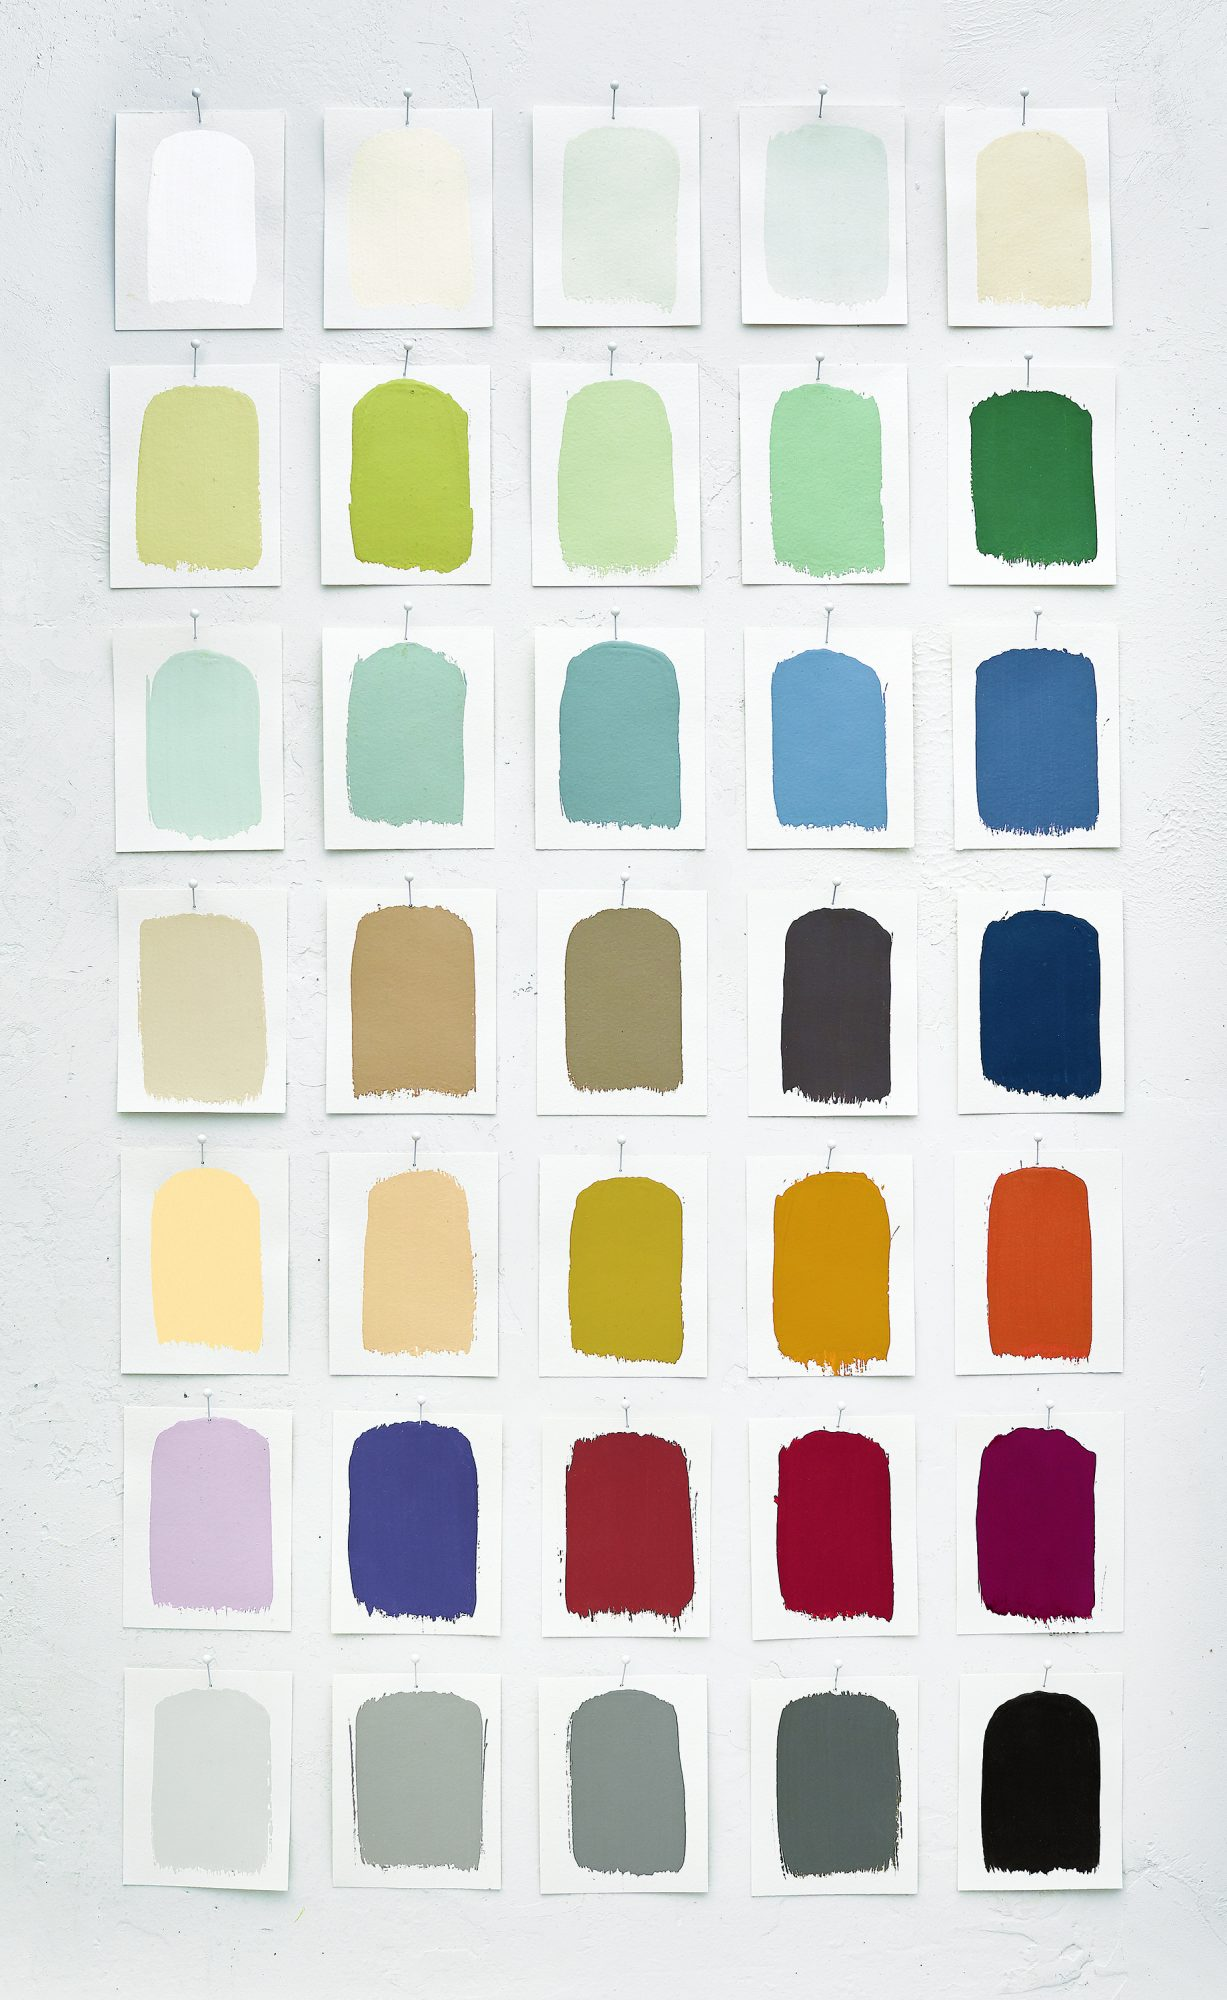 crate-and-barrel-paint-swatches